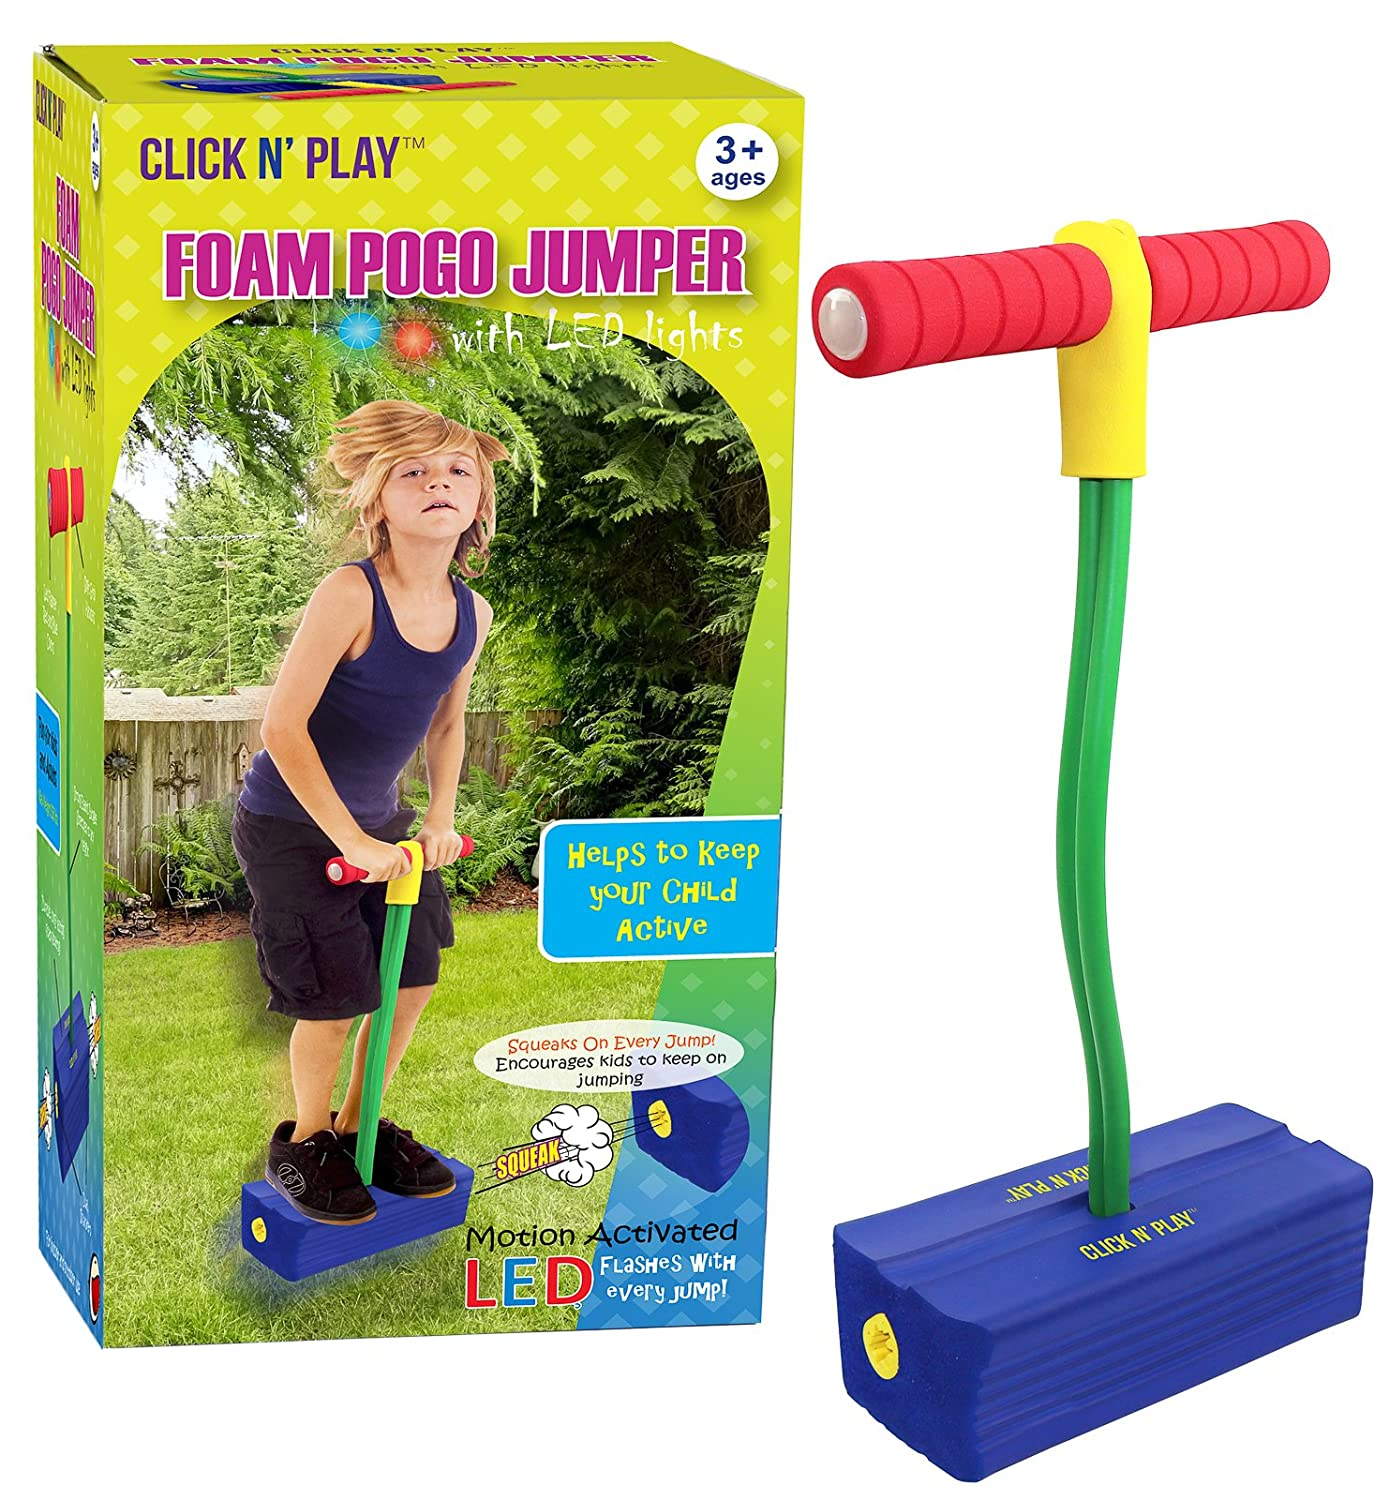 Click N' Play CNP0309 Foam Pogo Jumper - Makes Squeaky Sounds with Flashes LED Lights Click N' Play